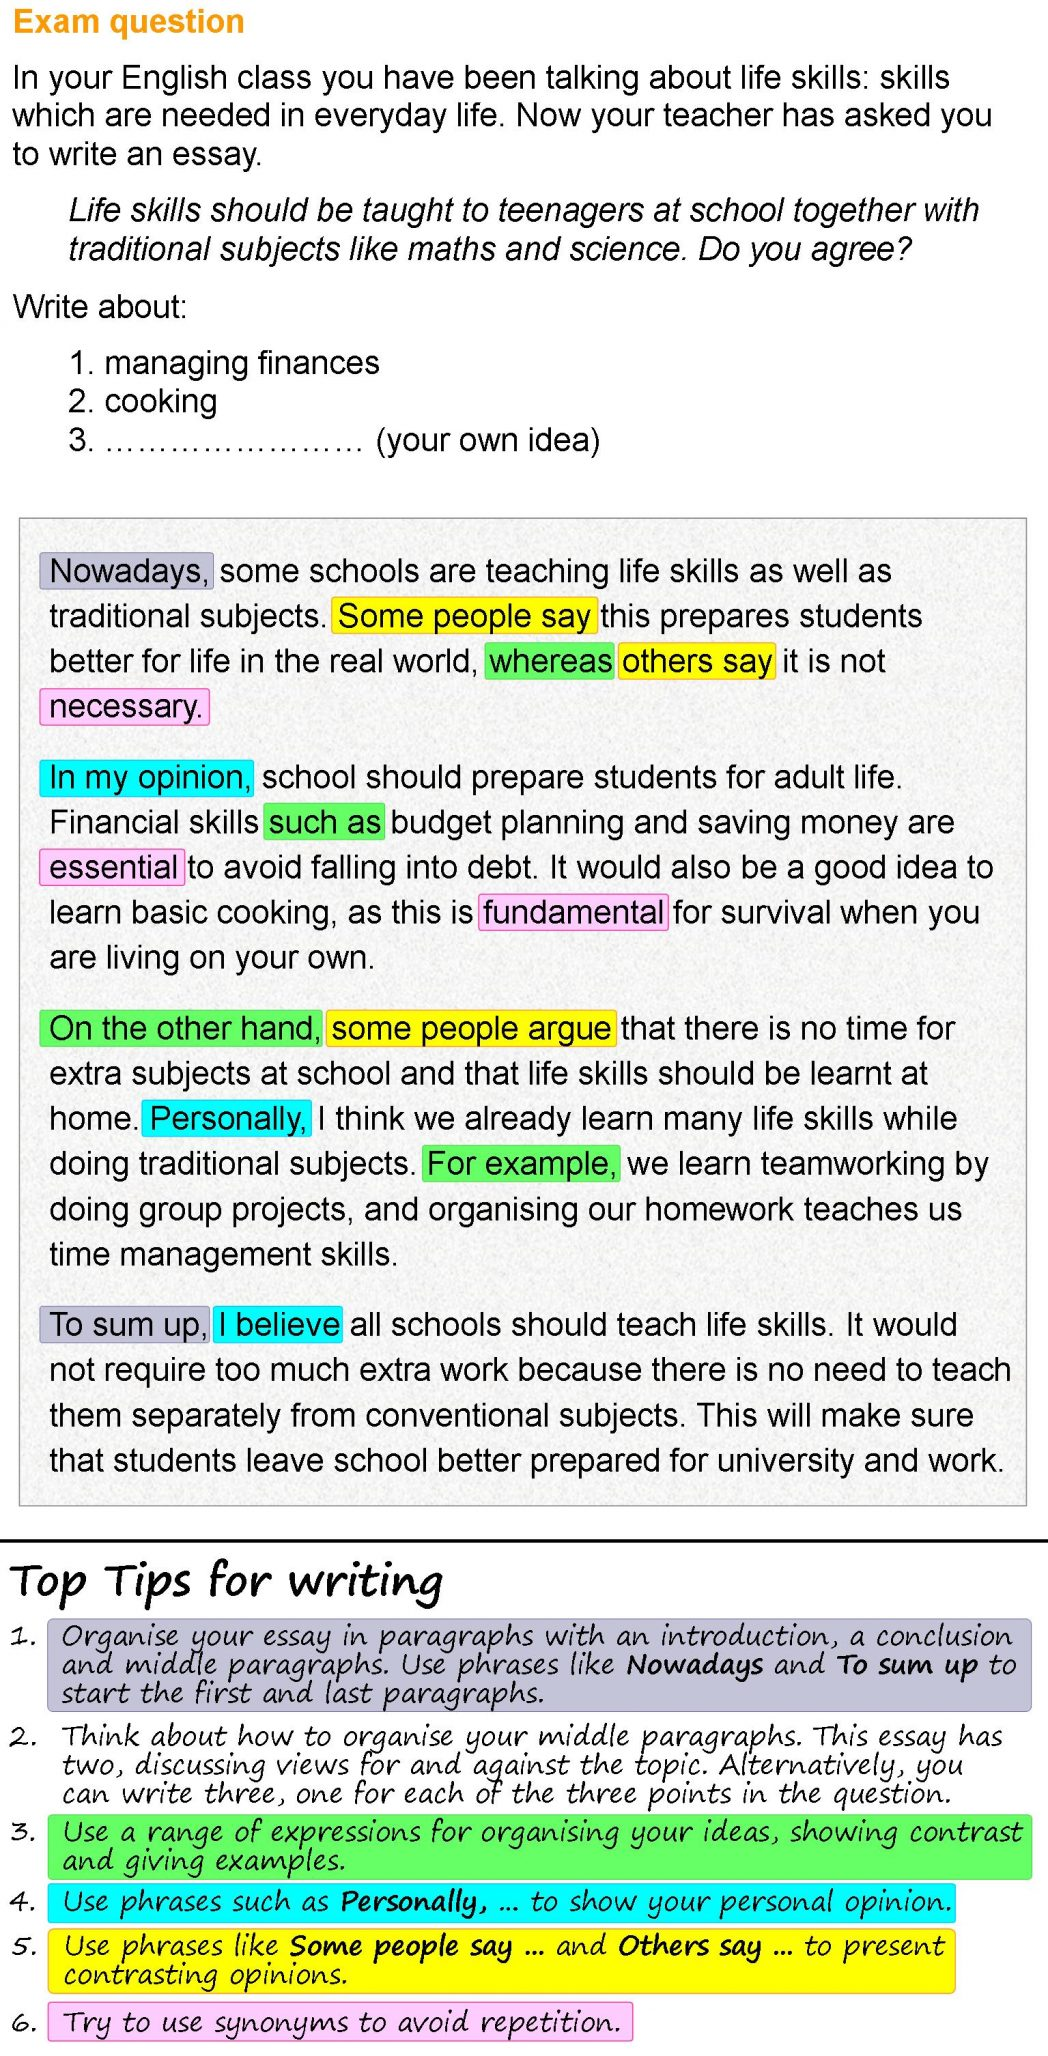 002 Why School Should Start Later Essay Example Skills Life Sex Education Taught In Schools Es Public Reasons Not Argumentative Essays Students Excellent The Morning Persuasive Full